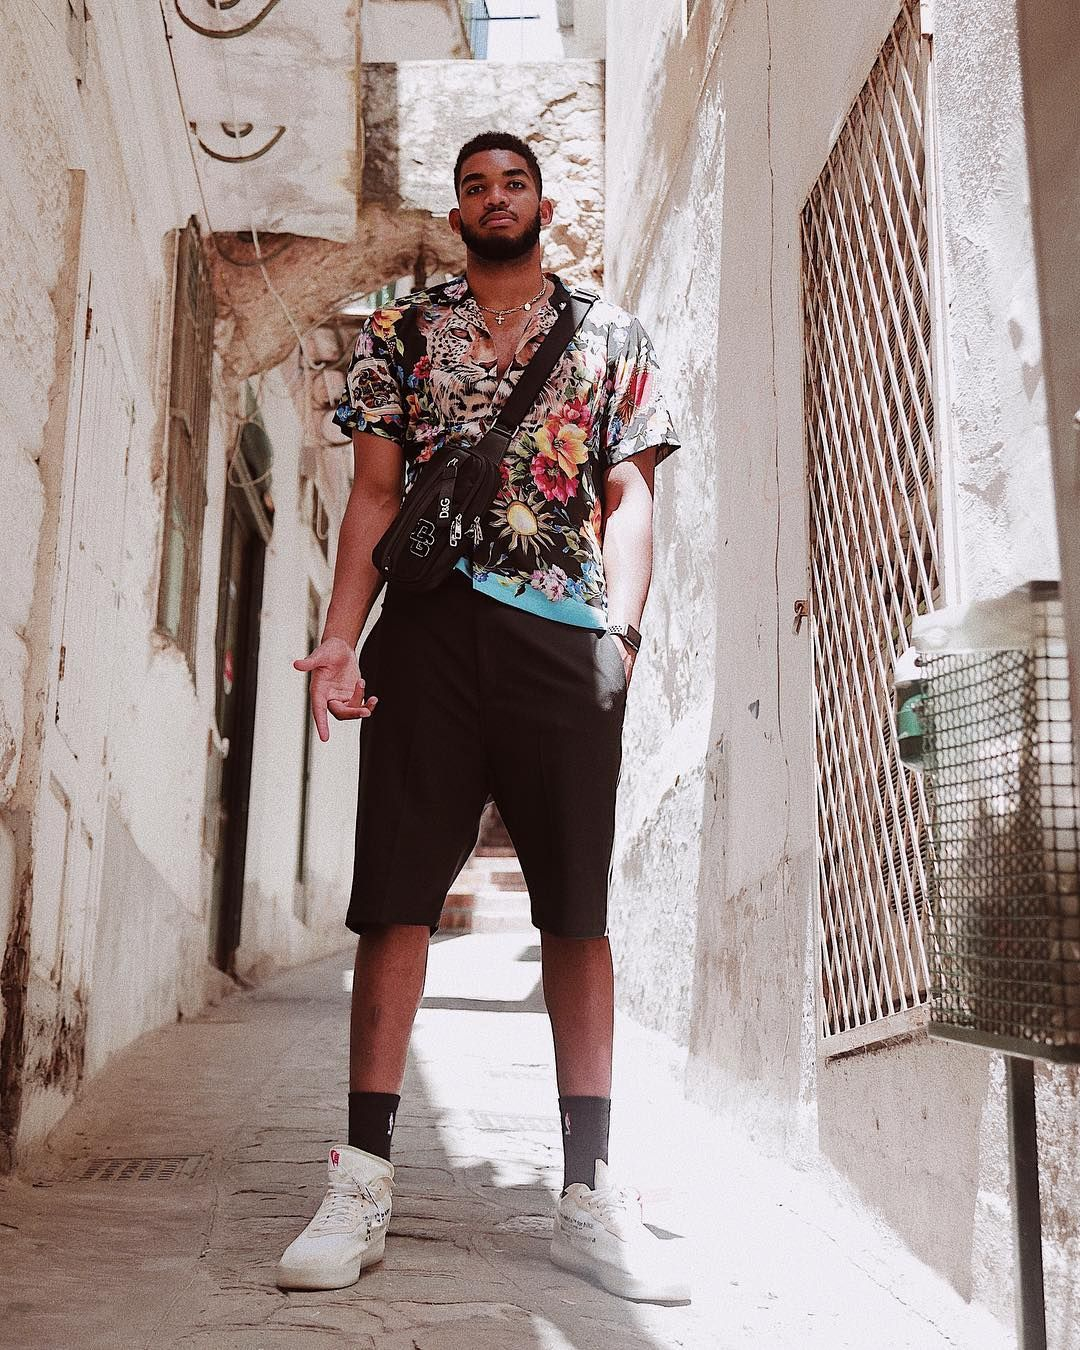 f8eb40ff1a1 Sideline Styles  Karl Anthony Towns Is A Wolf In Hypebeast Clothing ...